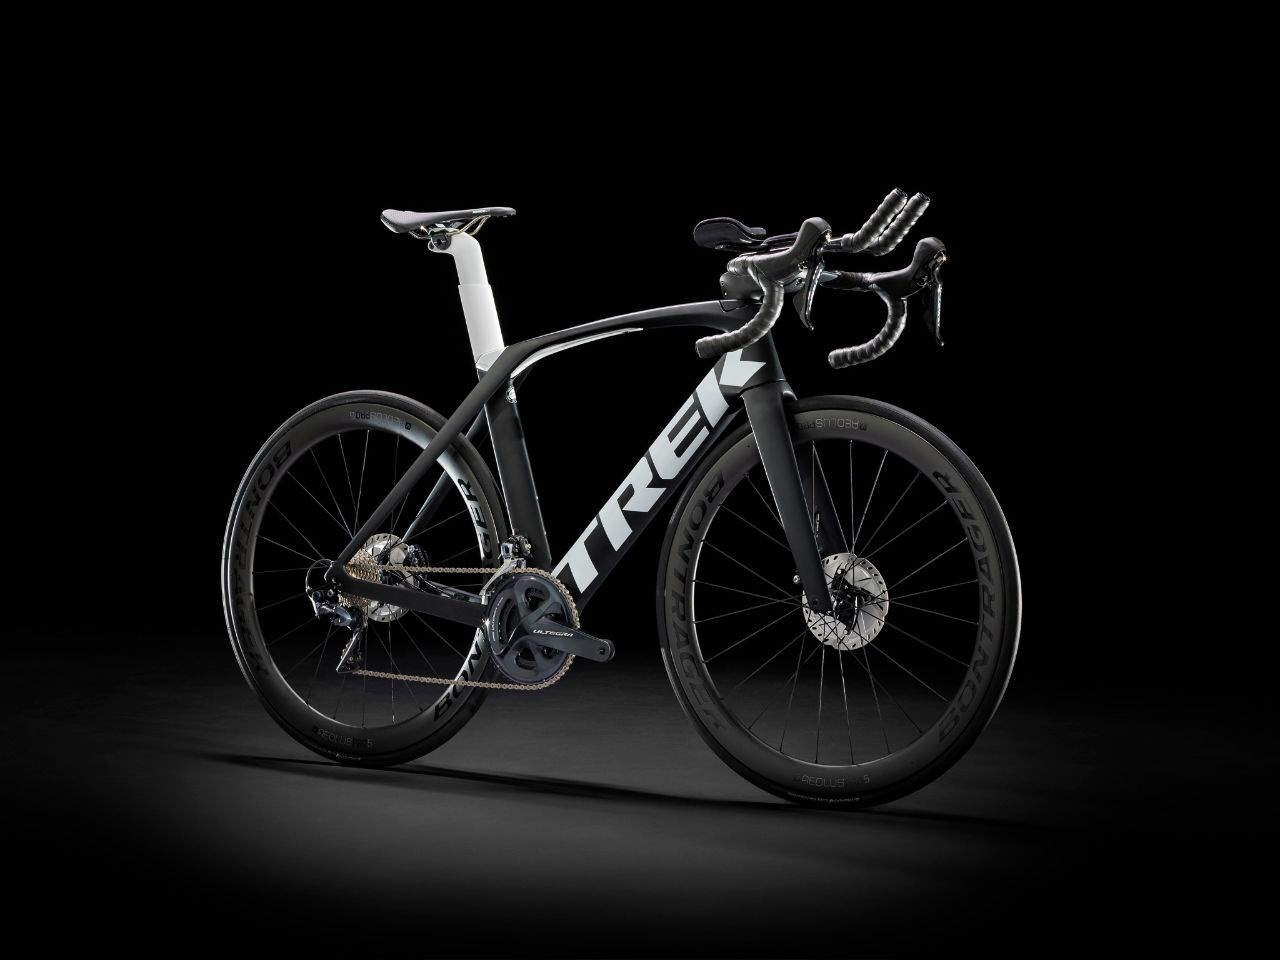 Nuova Trek Madone Speed